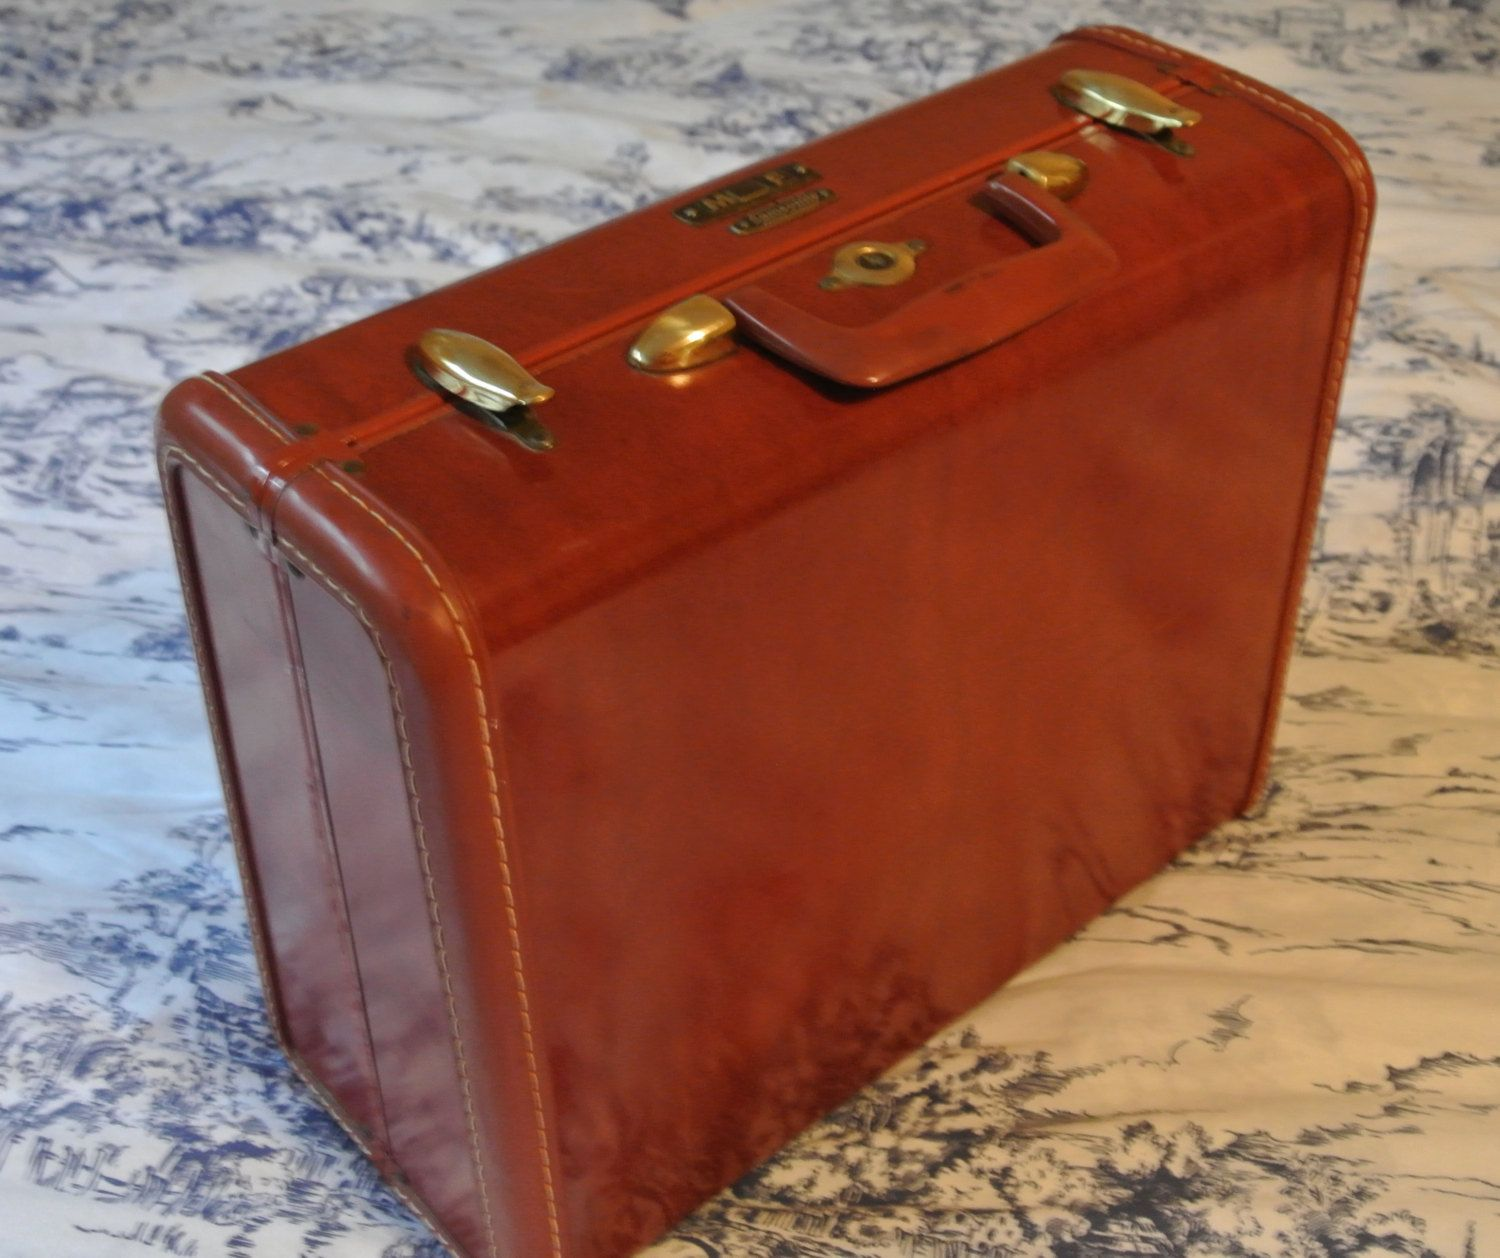 Samsonite Vintage Suitcase, Retro Brown Faux Leather, Samsonite ...